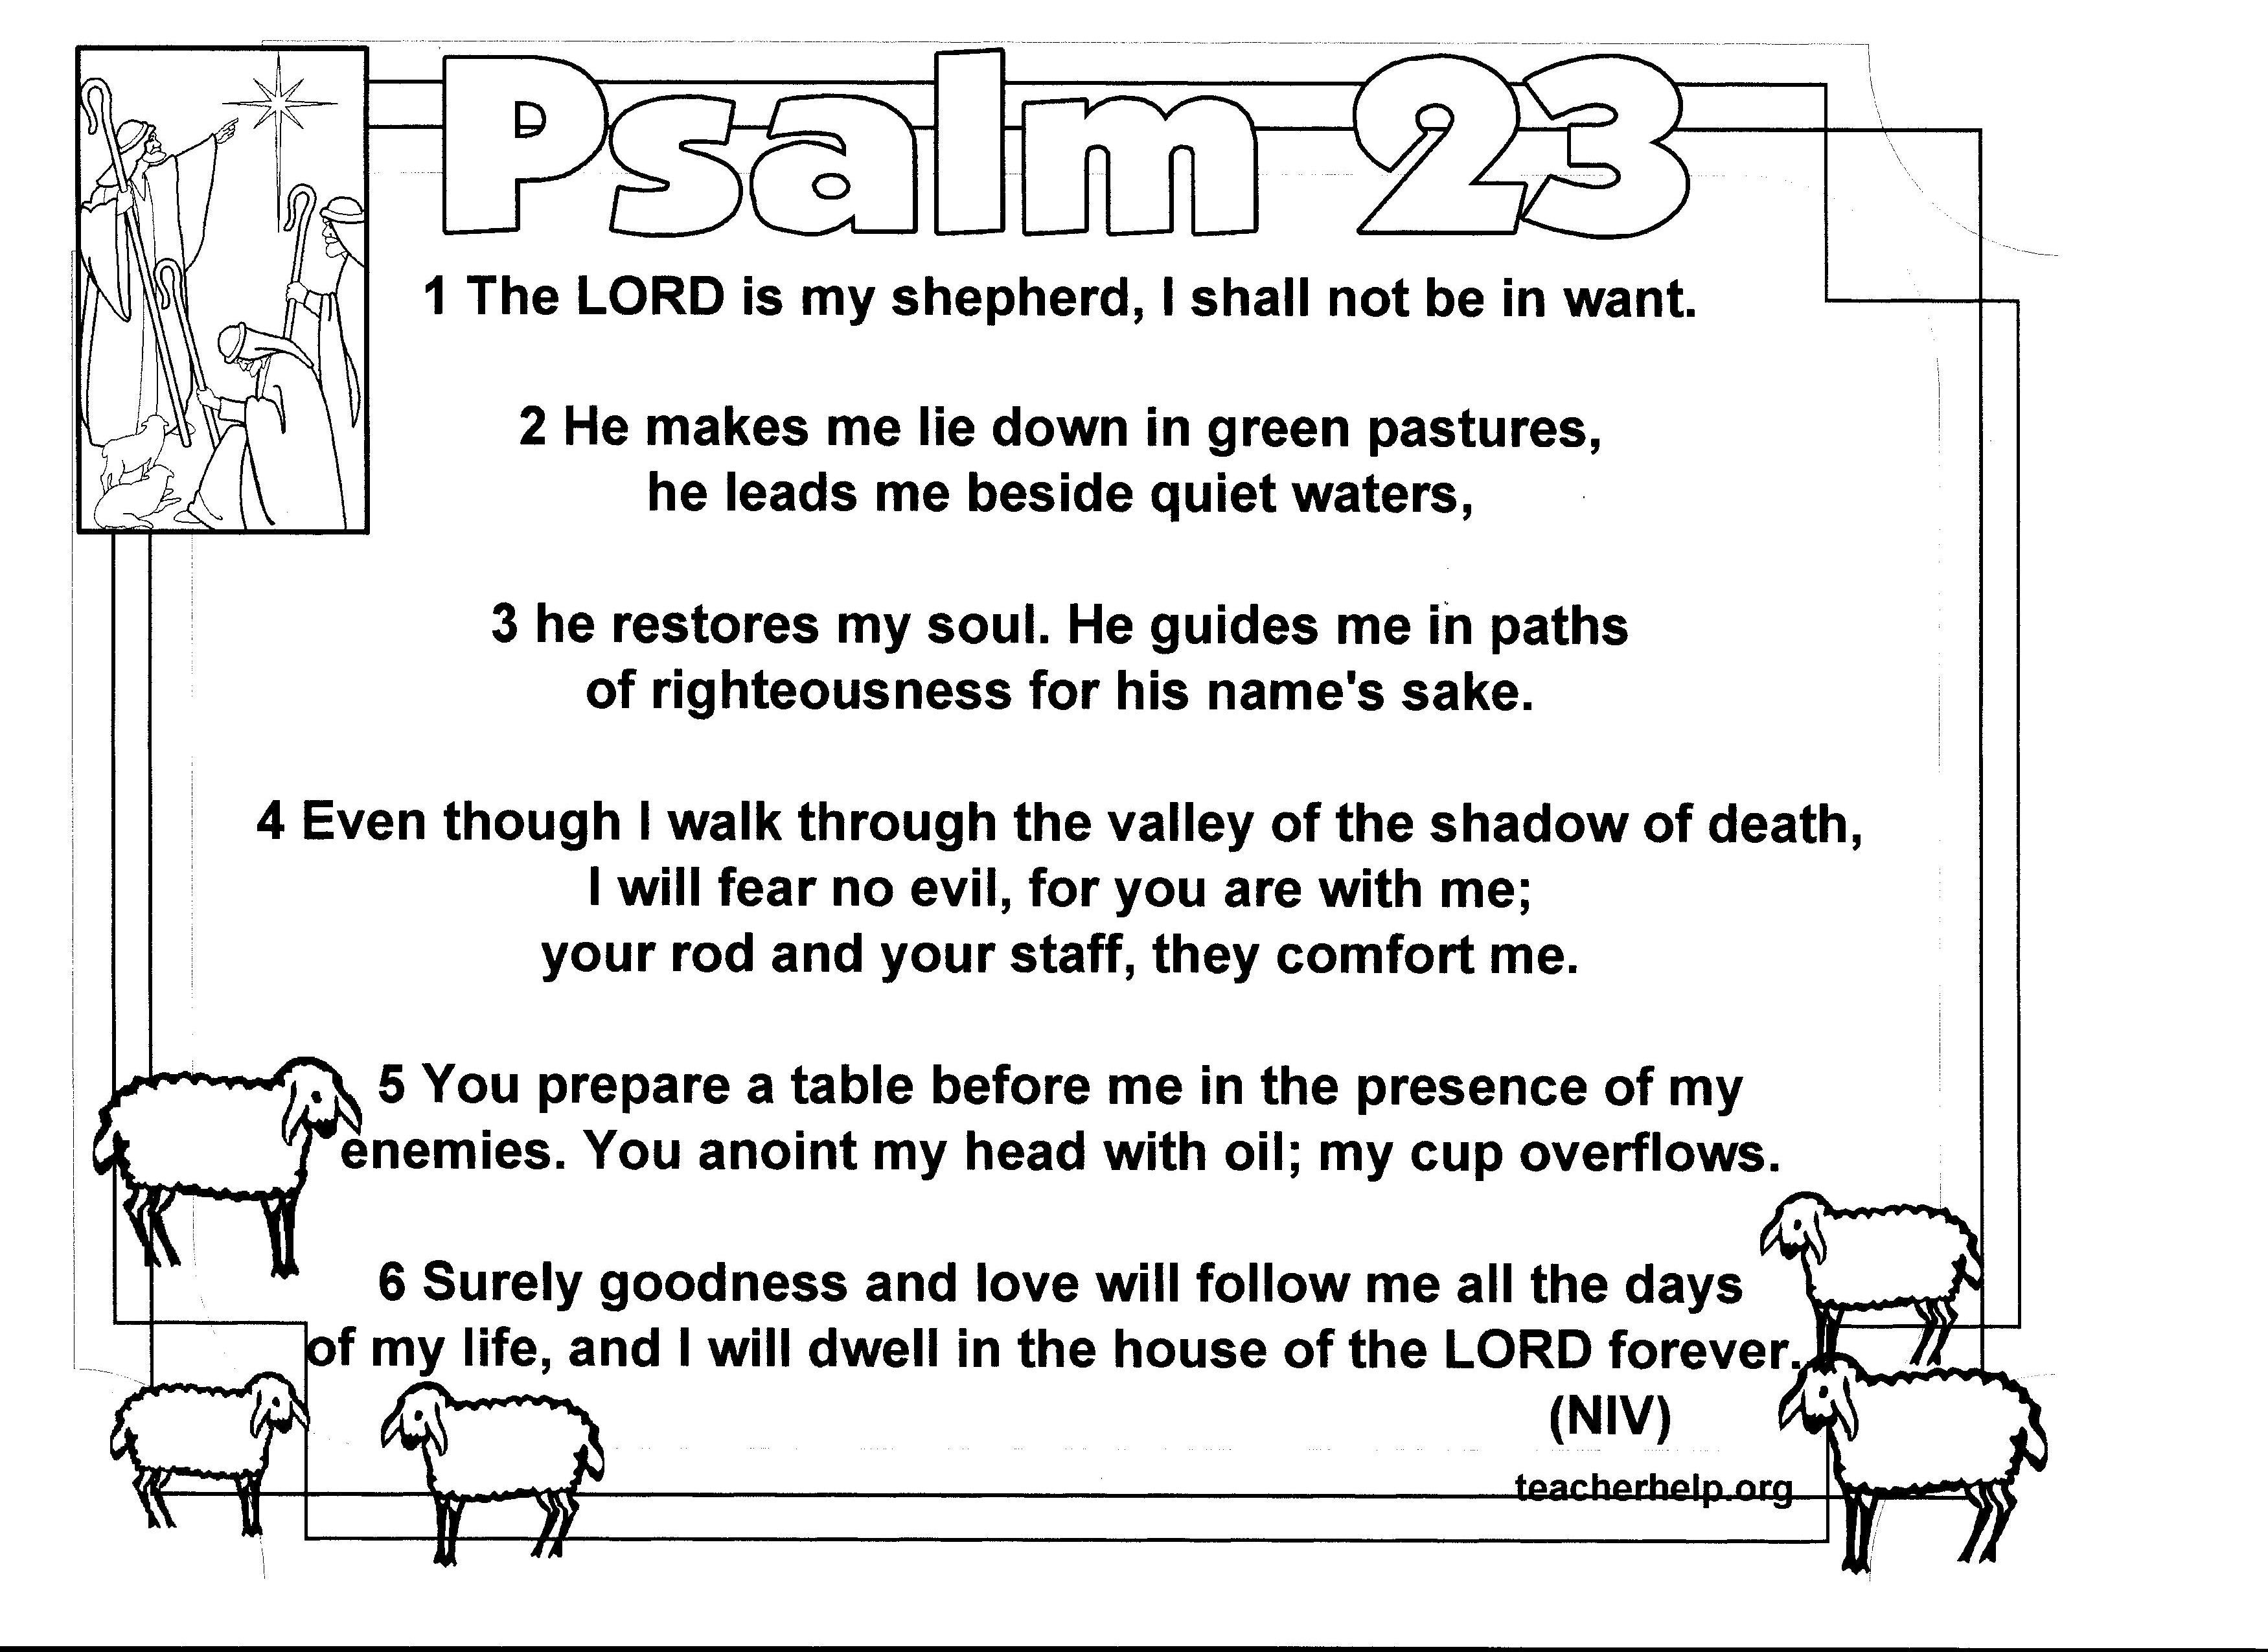 Psalm 23 Coloring Sheet Is Available In Niv Kjv And Nvi